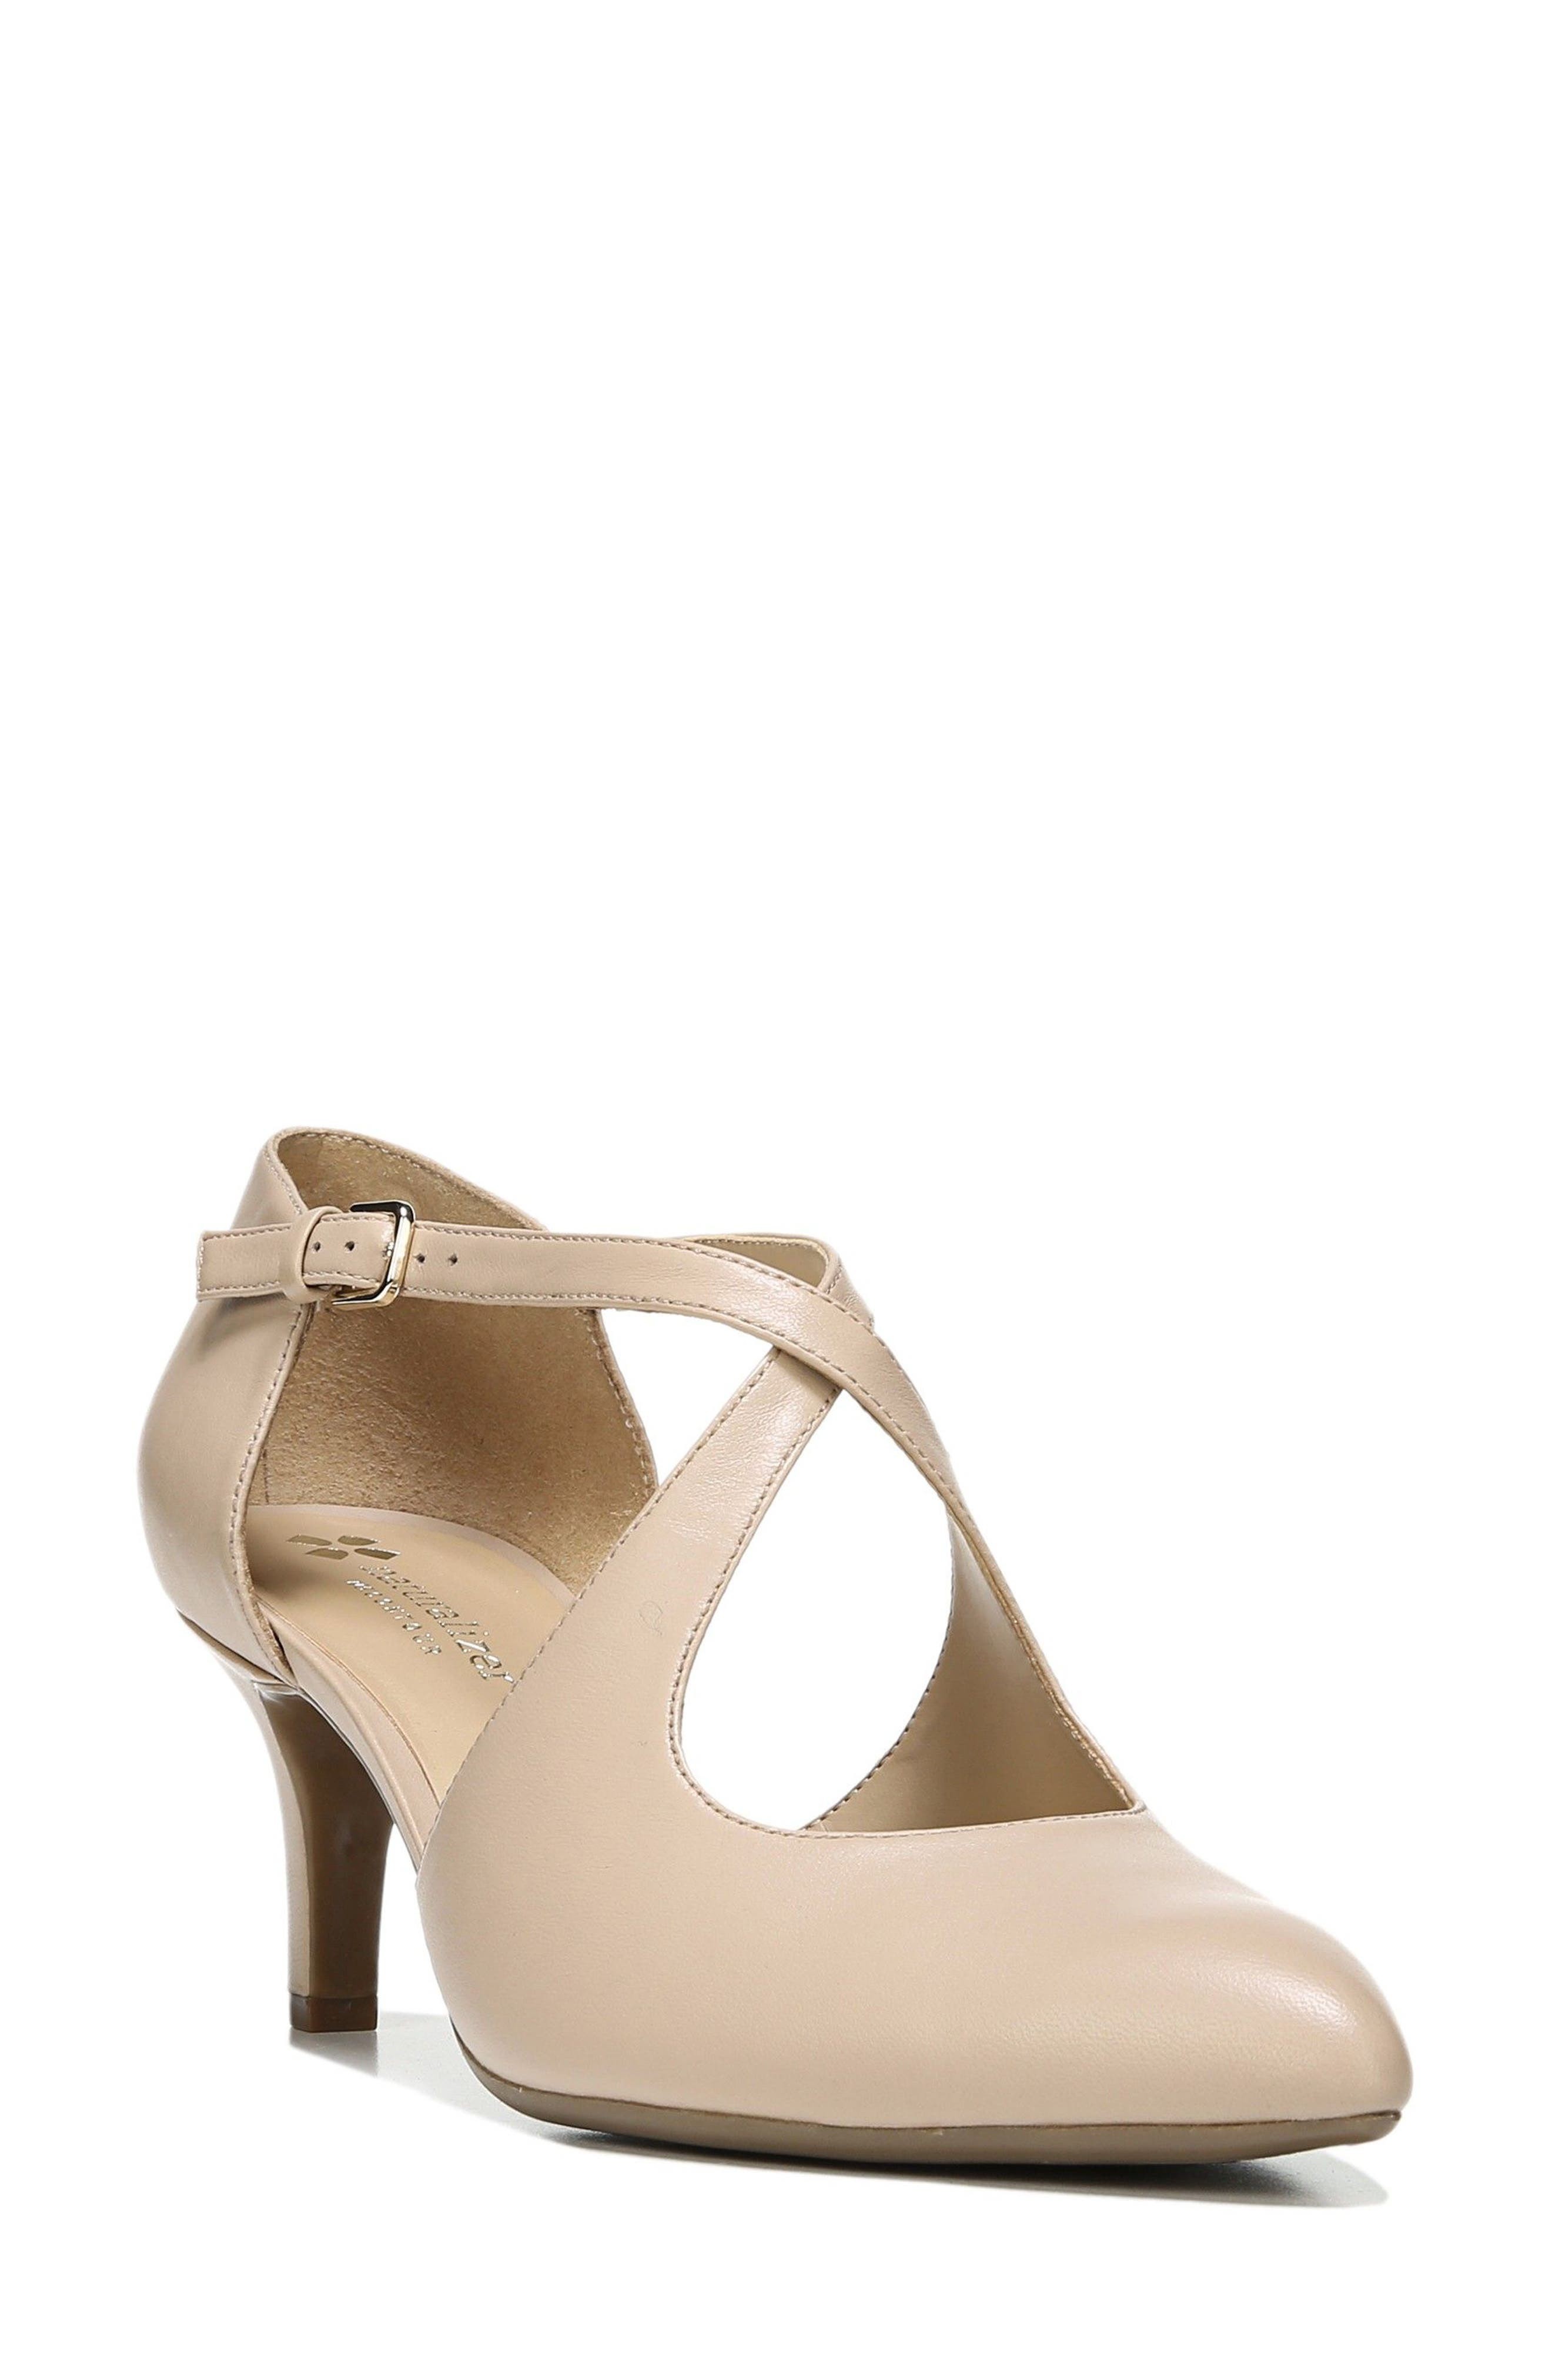 NATURALIZER Okira Crisscross Pump, Main, color, TAUPE LEATHER